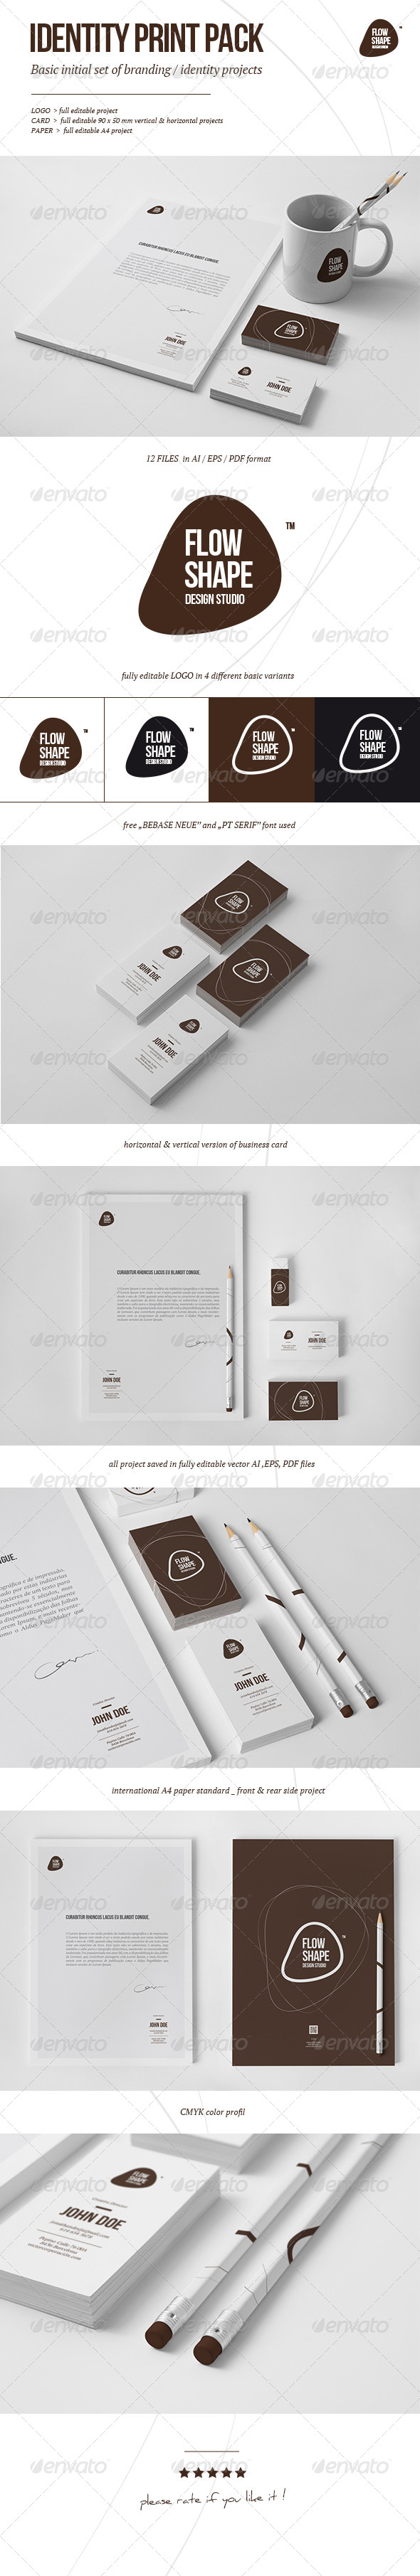 GraphicRiver Flow Shape Branding Print Pack 5106133